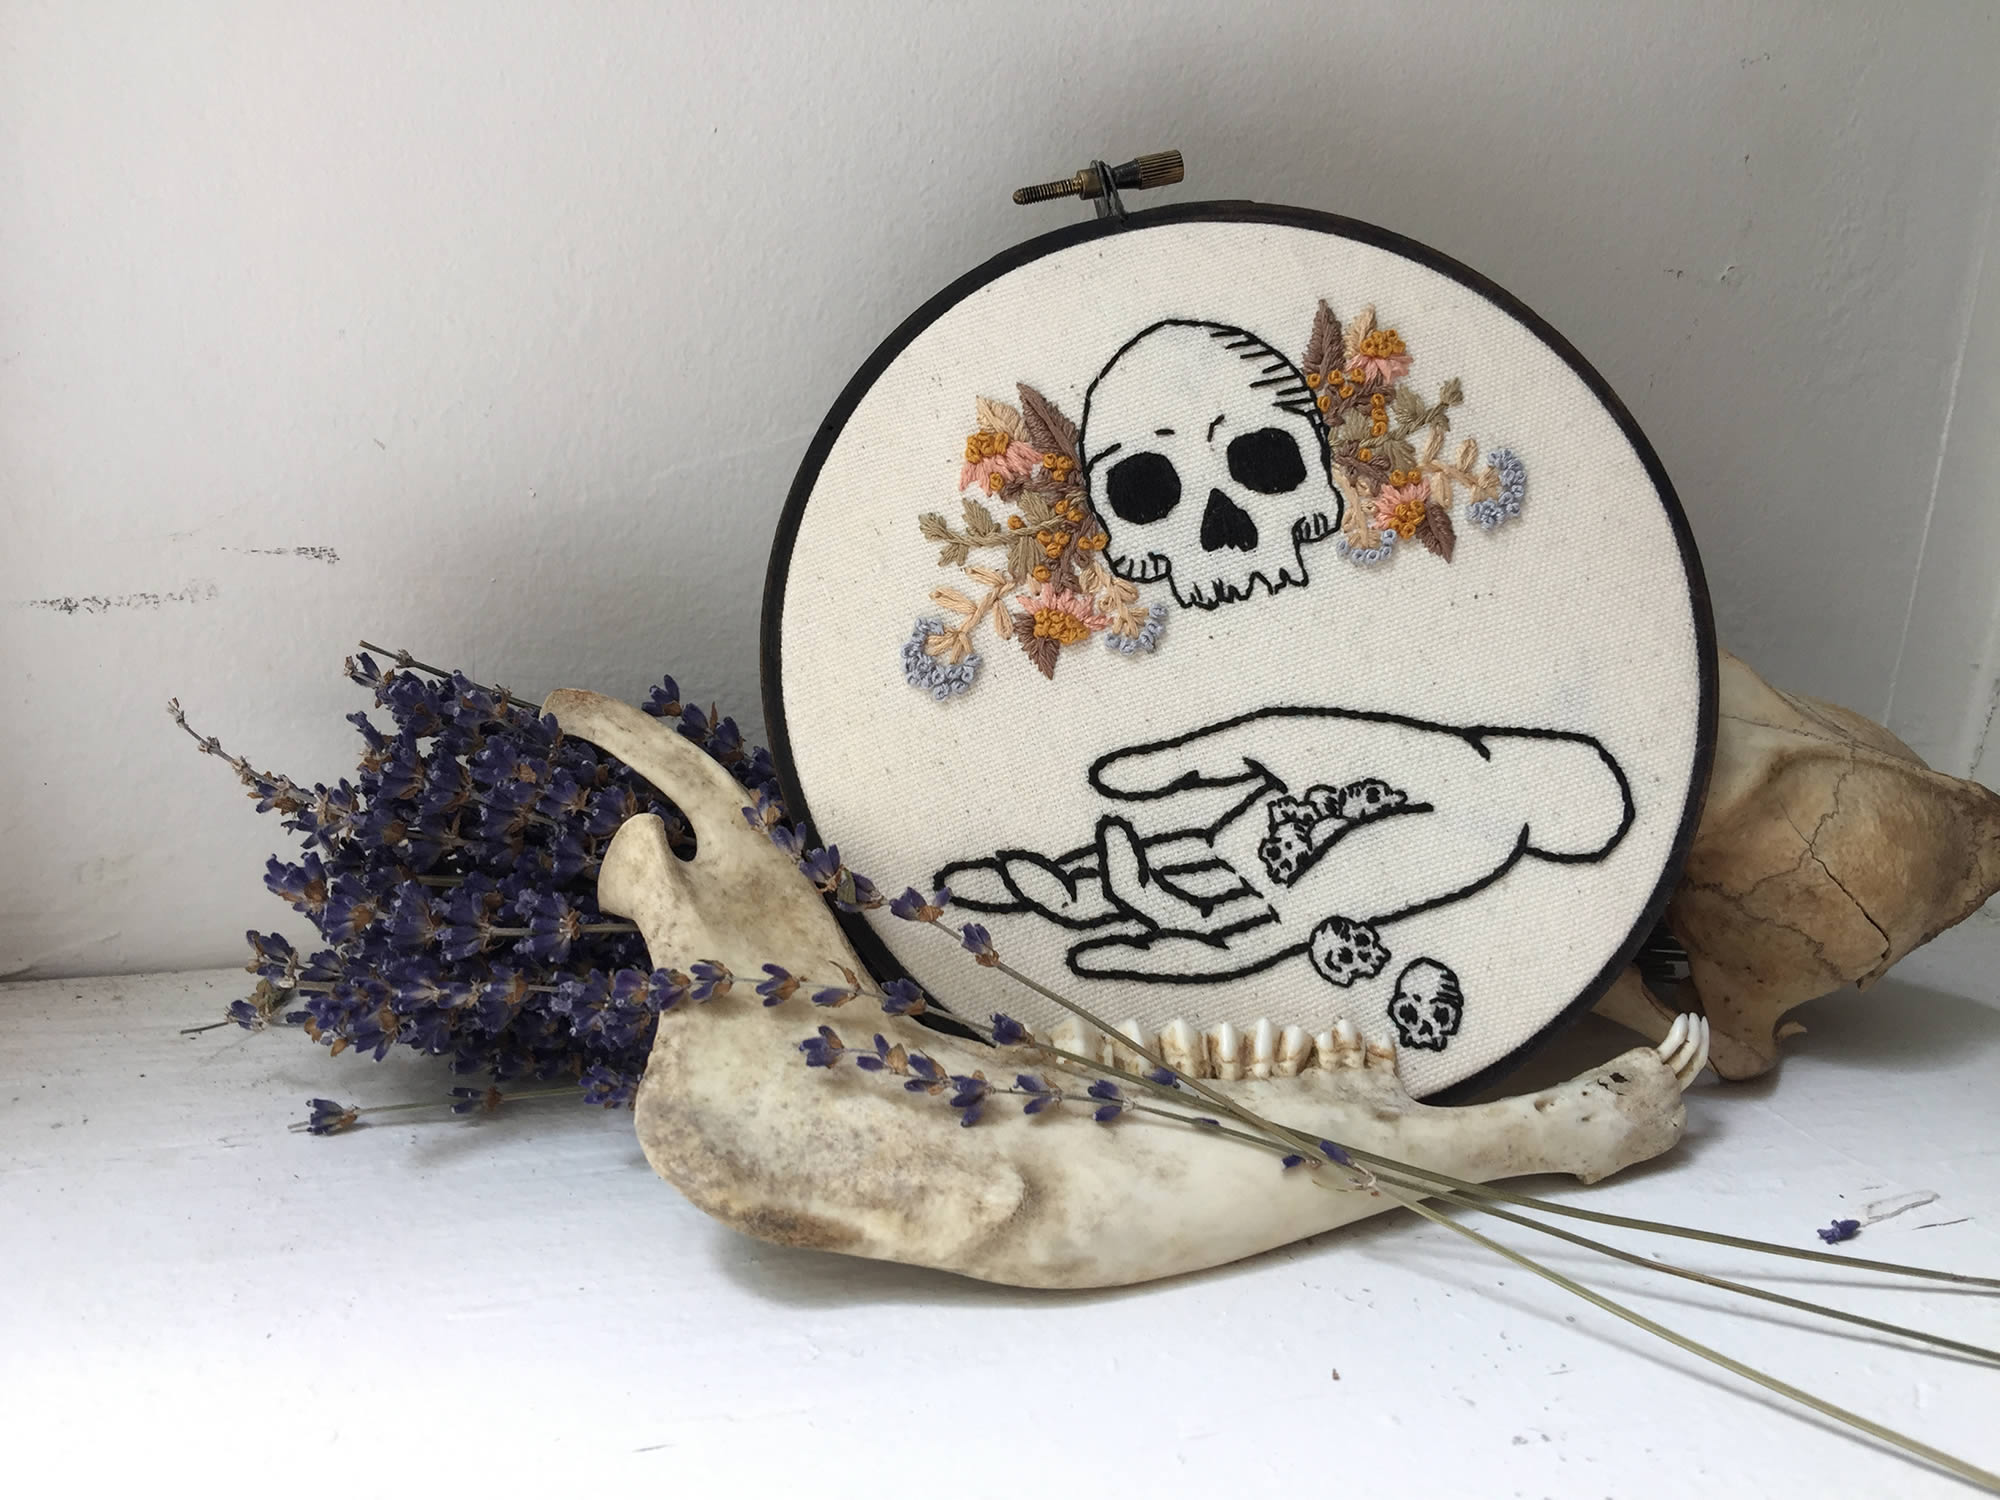 "Self-Proclaimed ""Creepster"" Rachel Dreimiller Has a Gift for Spooky Embroidery"